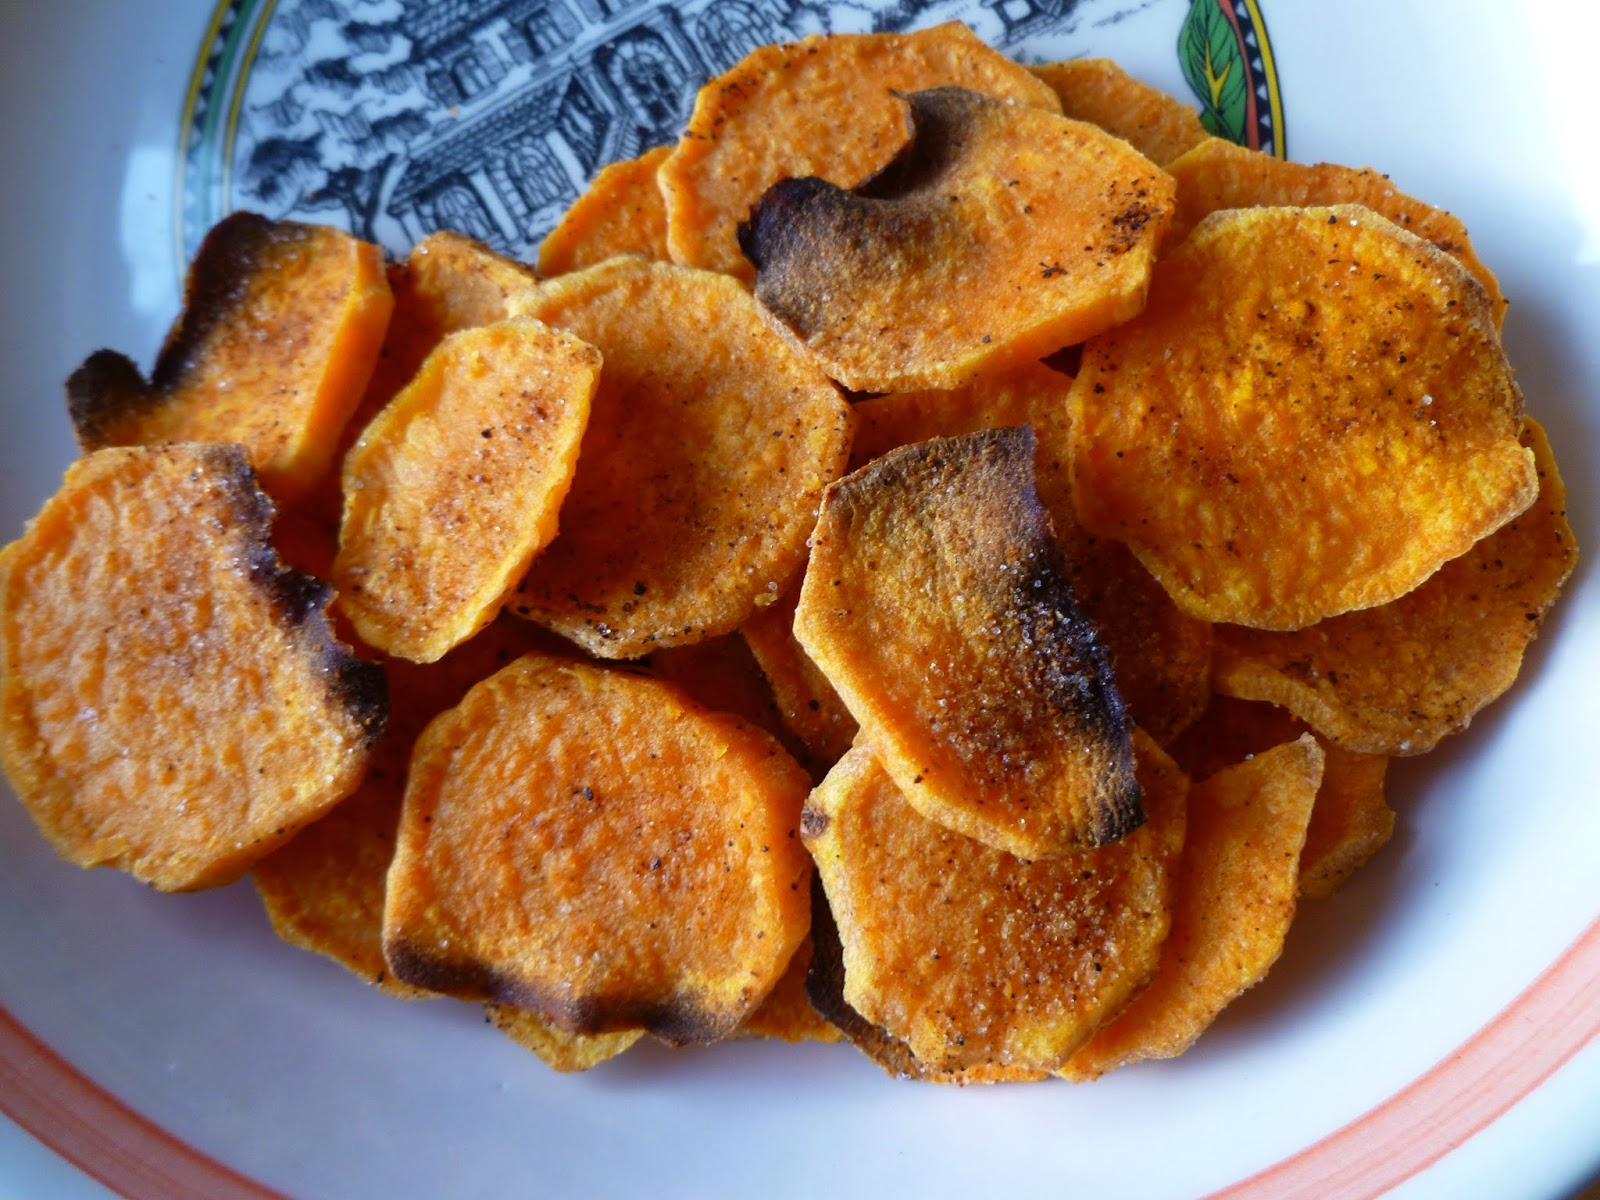 ... Chef's Baking: Sweet Potato Chips - it's National Potato Chip Day